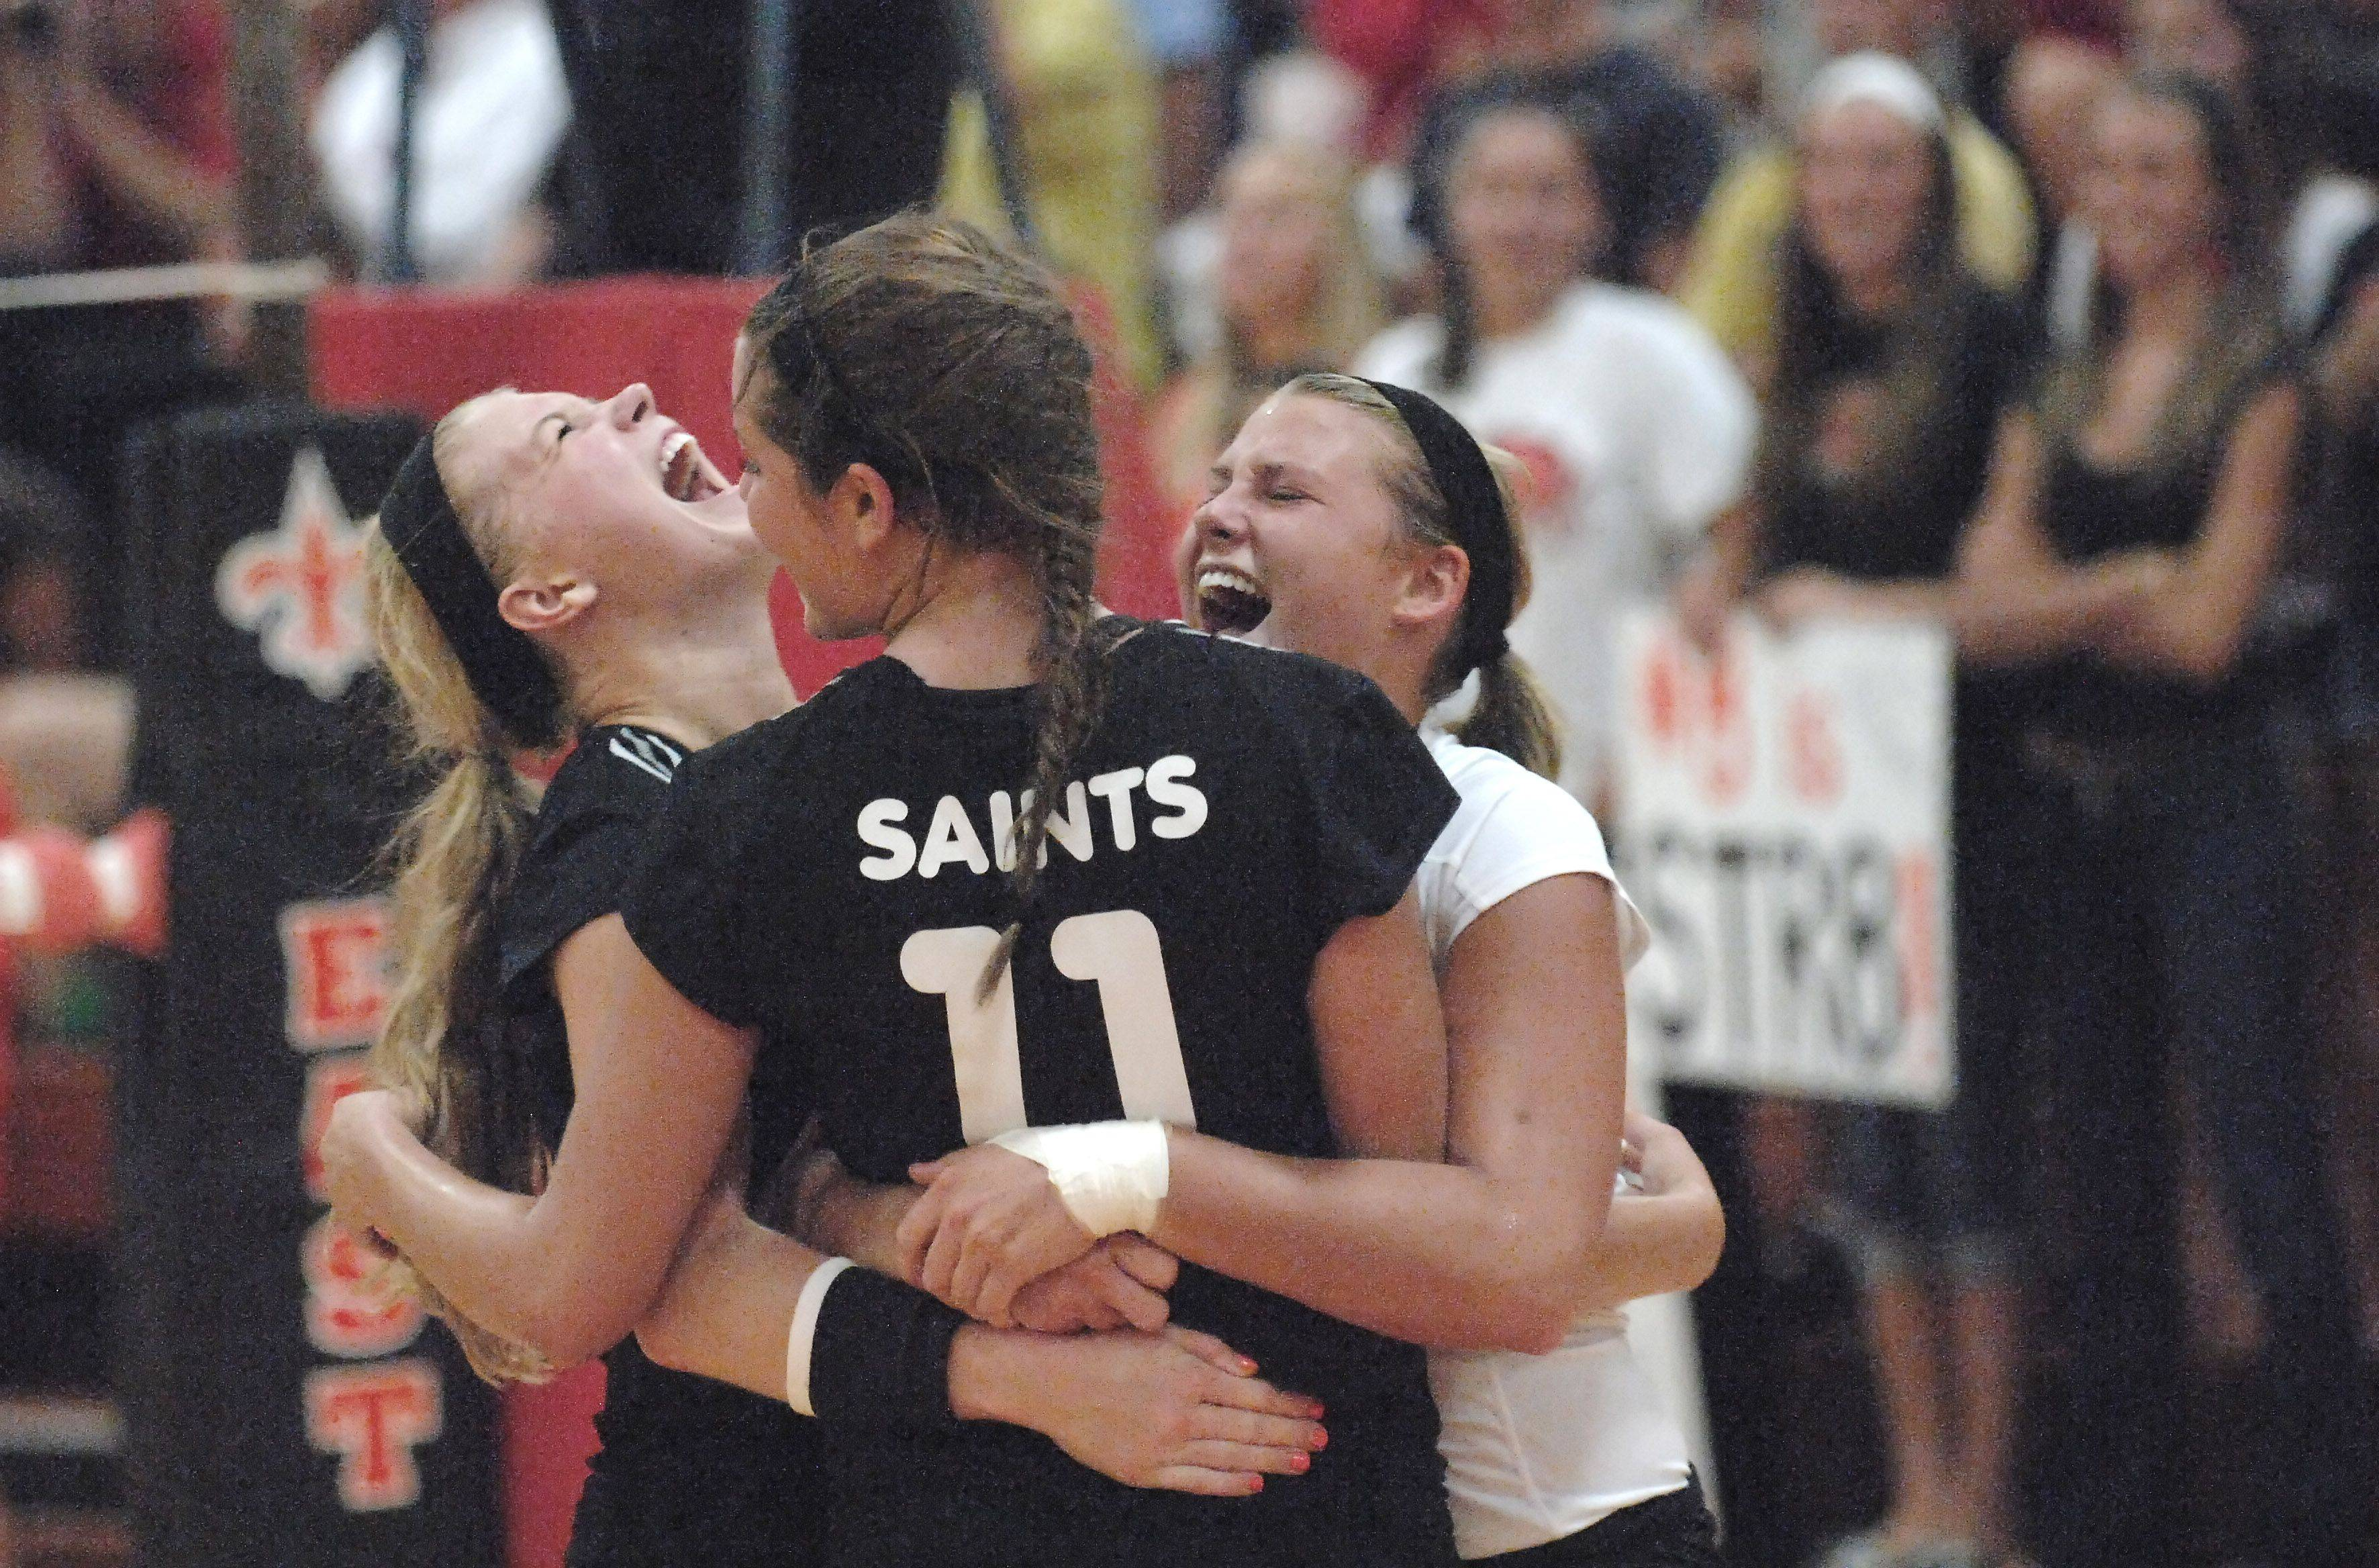 St. Charles East's Kadie Brooks, Erienne Barry and Maisey Mulvey celebrate a point early in the first game against Benet Academy Tuesday.